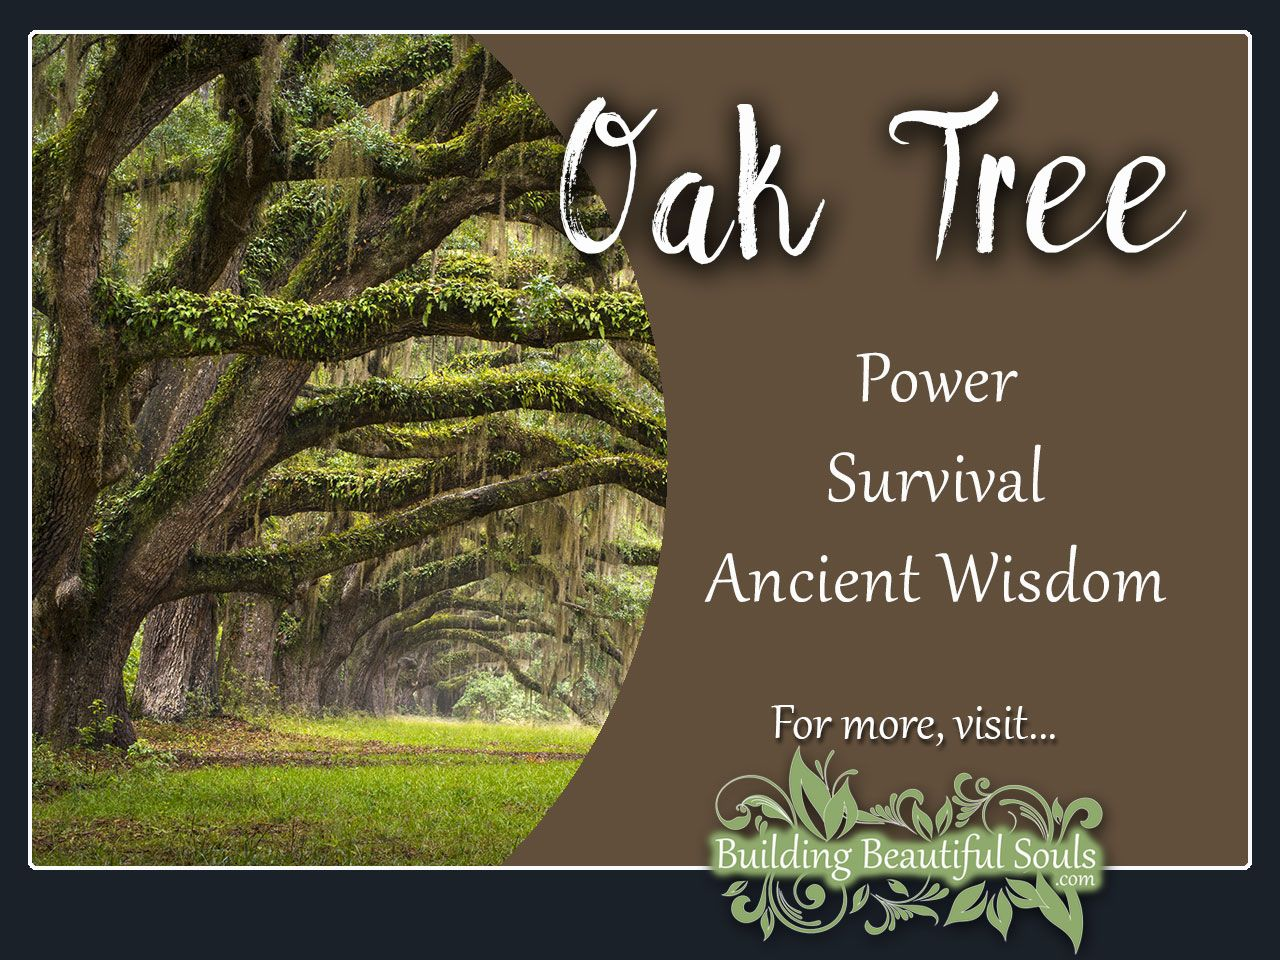 Oak Tree Meaning & Symbolism Tree meanings, Oak tree